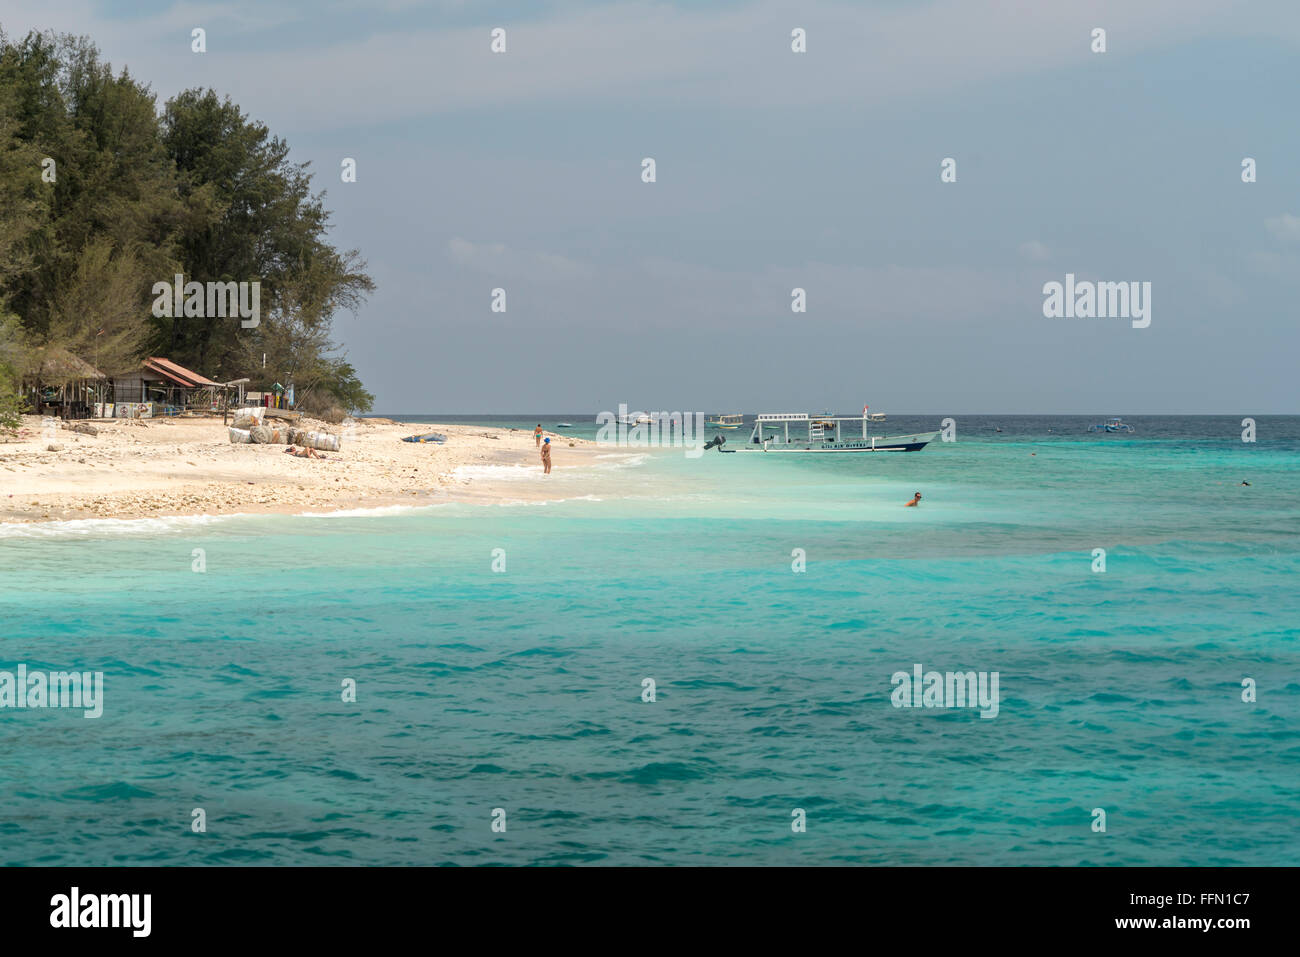 beach on the small island Gili Meno, Lombok, Indonesia, Asia - Stock Image